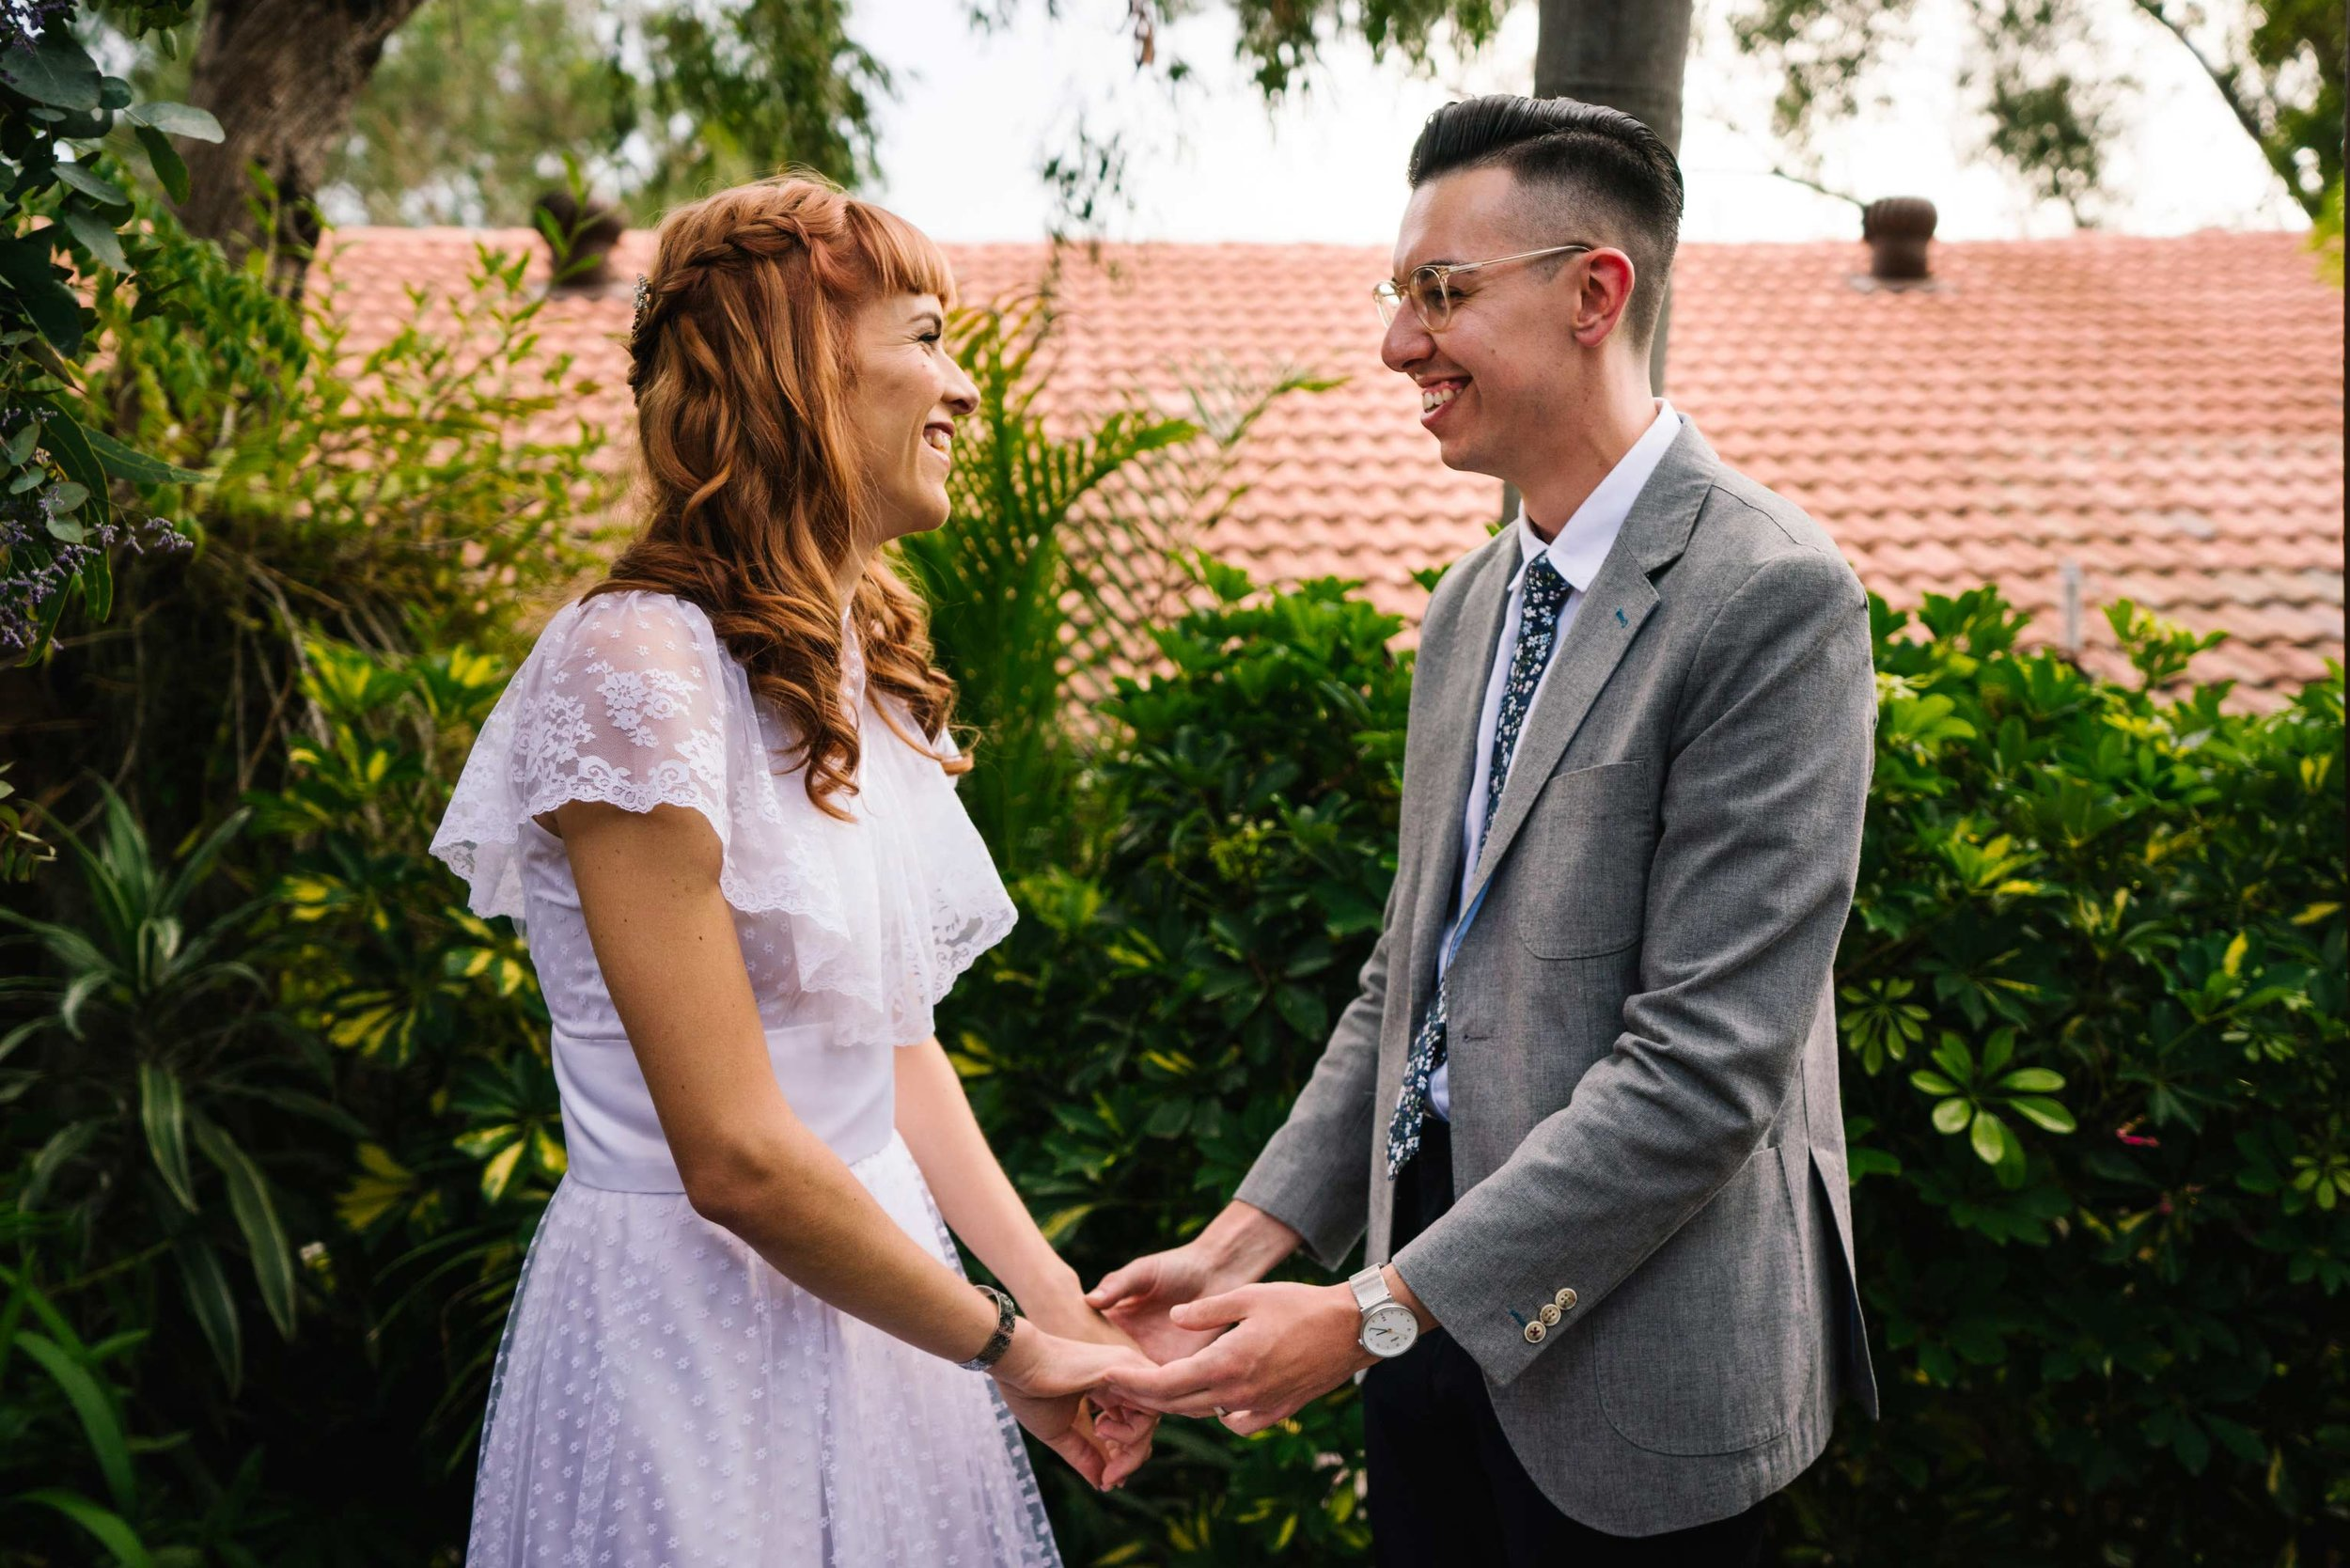 Newlyweds at hipster wedding ceremony